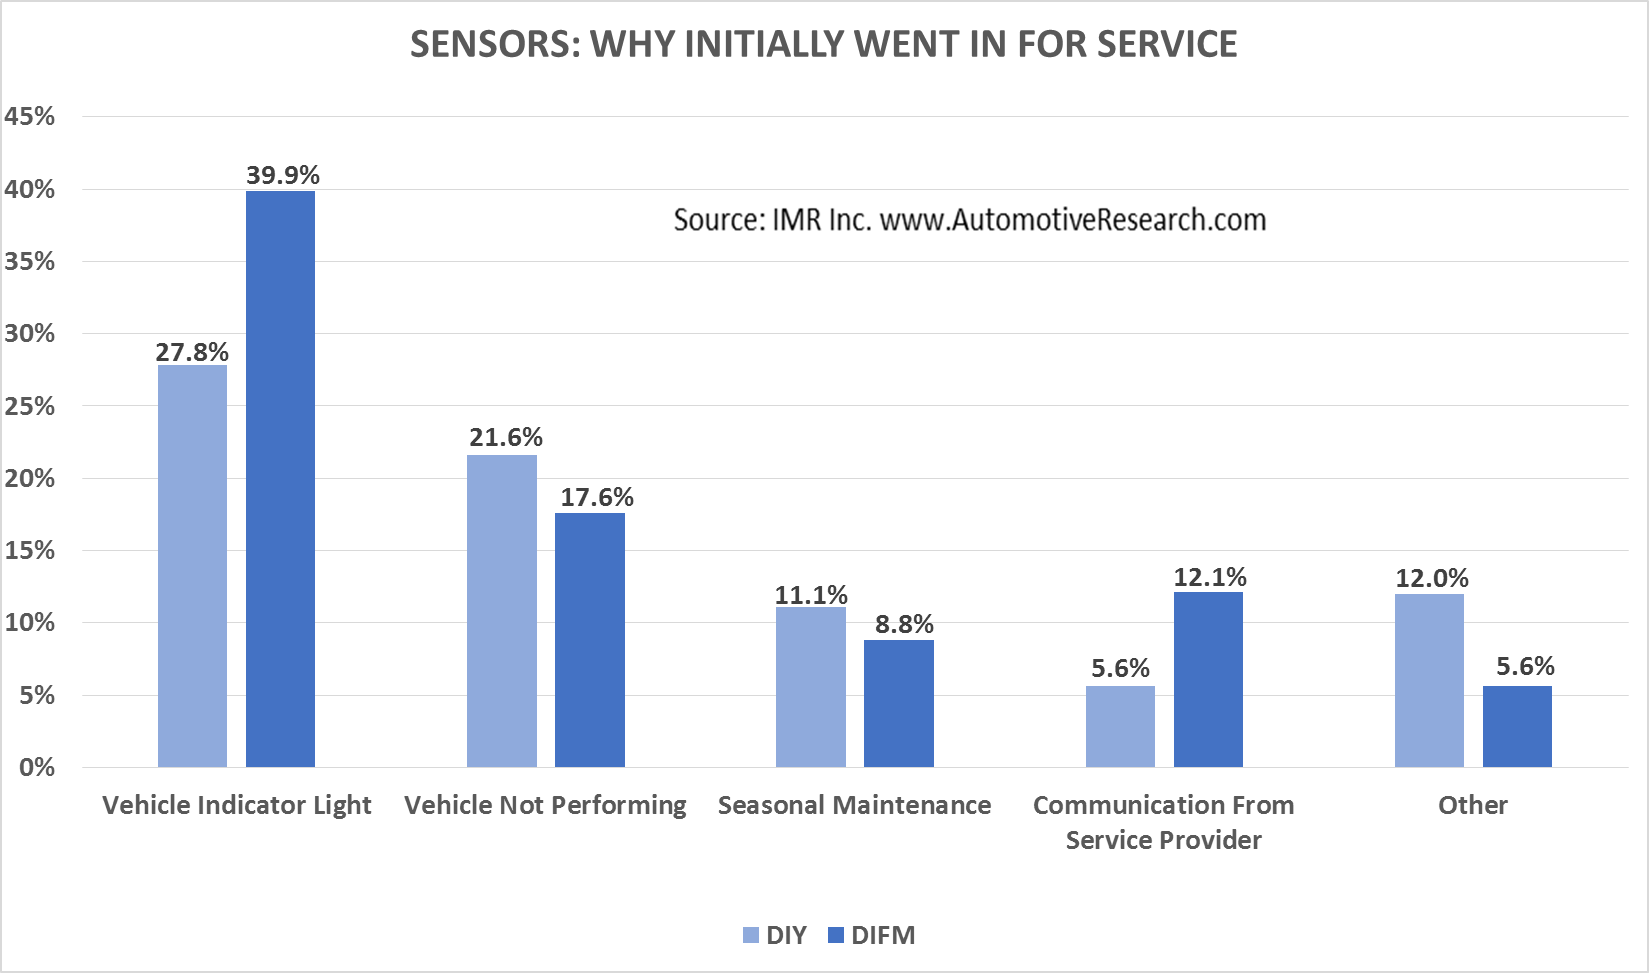 Automotive Market Research Study - Why Consumers Went For Vehicle Sensor Service